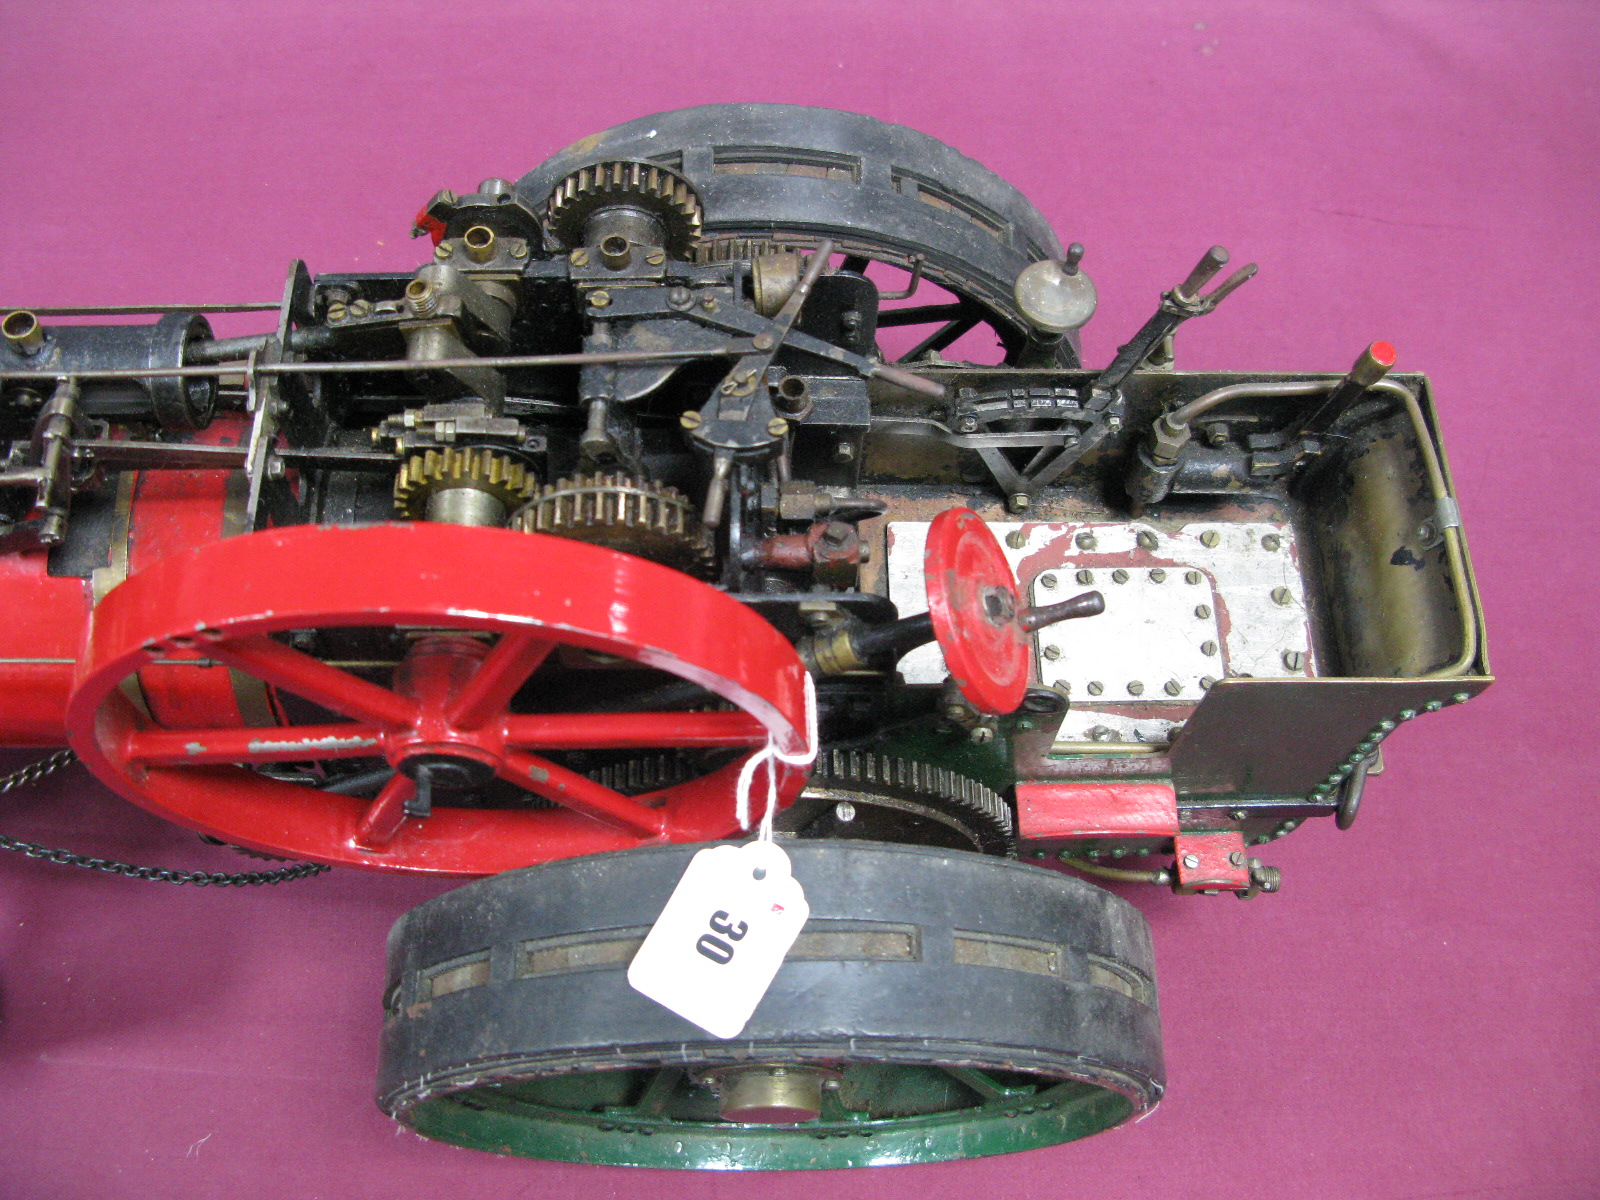 Lot 30 - A 1.5 Inch Scale Live Steam Model Of A Traction Engine, although unnamed probably based on an